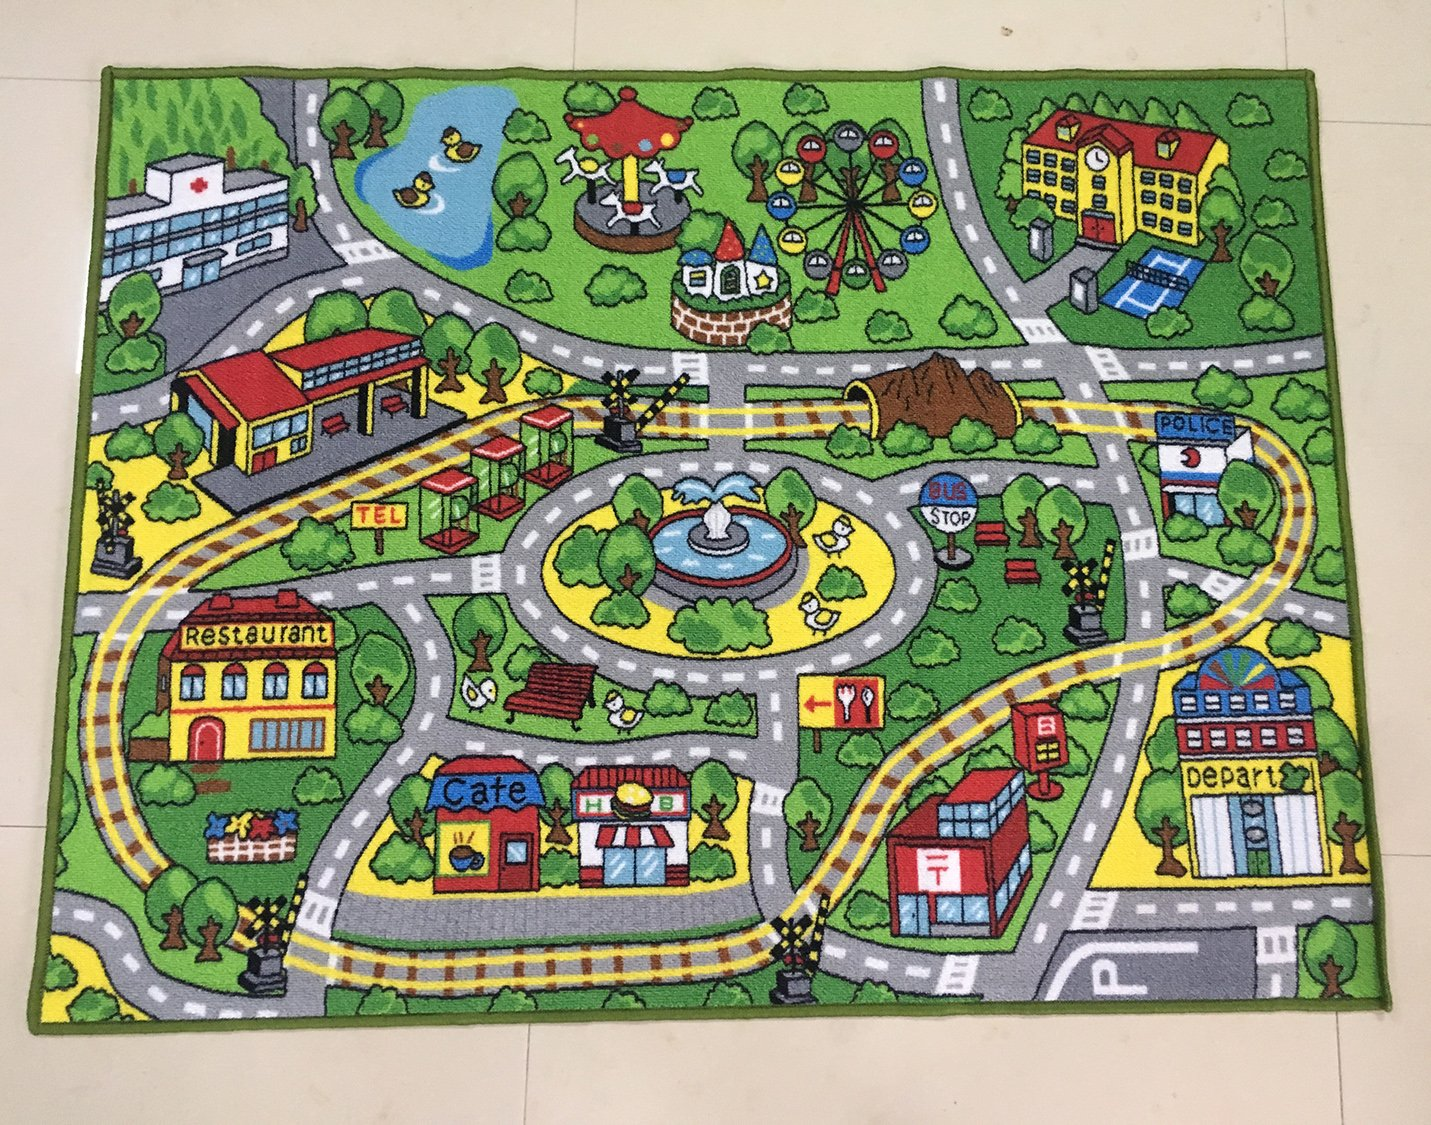 HUAHOO Large Kid Play Rug for Toy Cars,Safe and Fun Children Learning Carpet with Non-Slip Backing Kid Play mat for Playroom,Bedroom and Nursery (39'' x 51'')